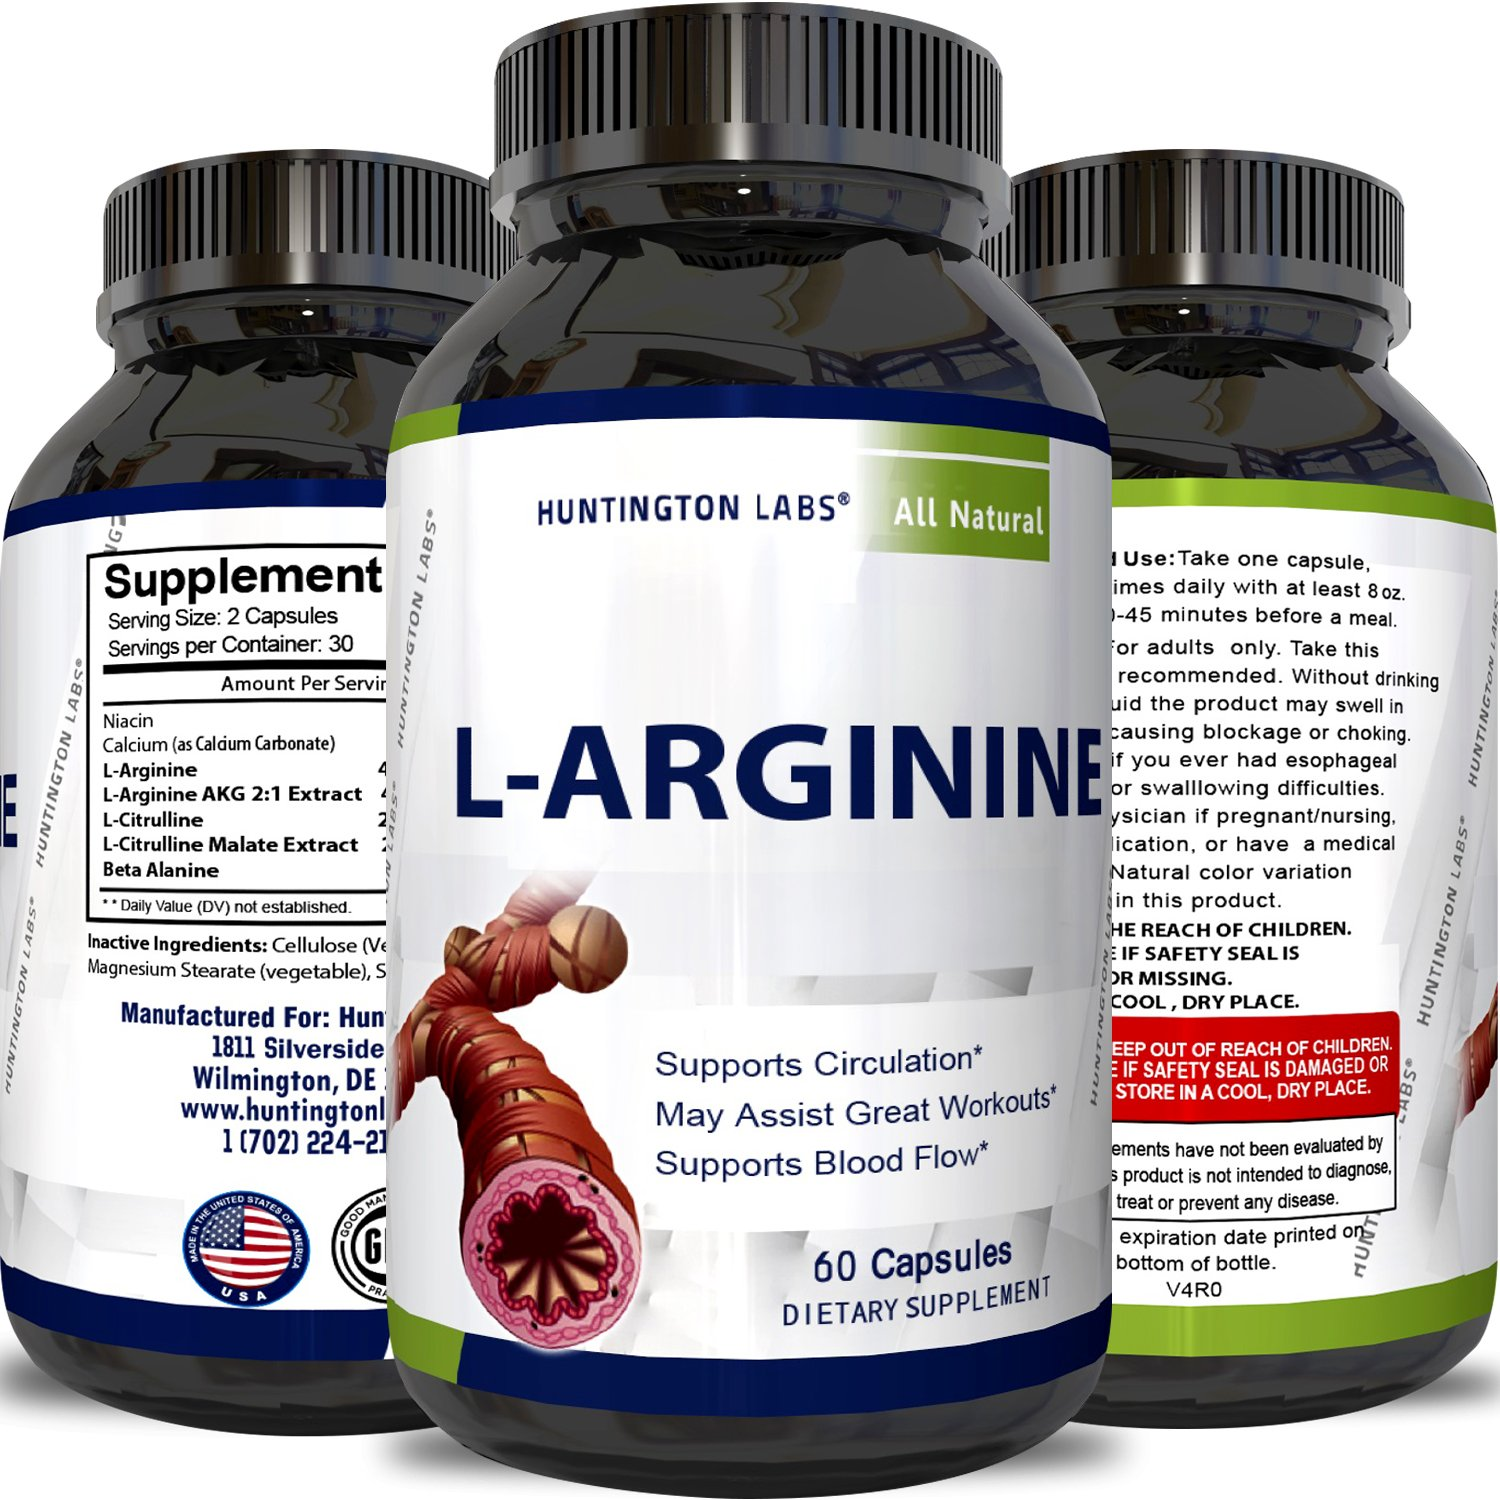 Purest L Arginine Supplement on the Market 60 Capsules - Boost Nitric Oxide Levels, Endurance & Full Time Energy Enhancement - Potent and Effective for Men, Women and Teens - Best L-Arginine by Huntington Labs